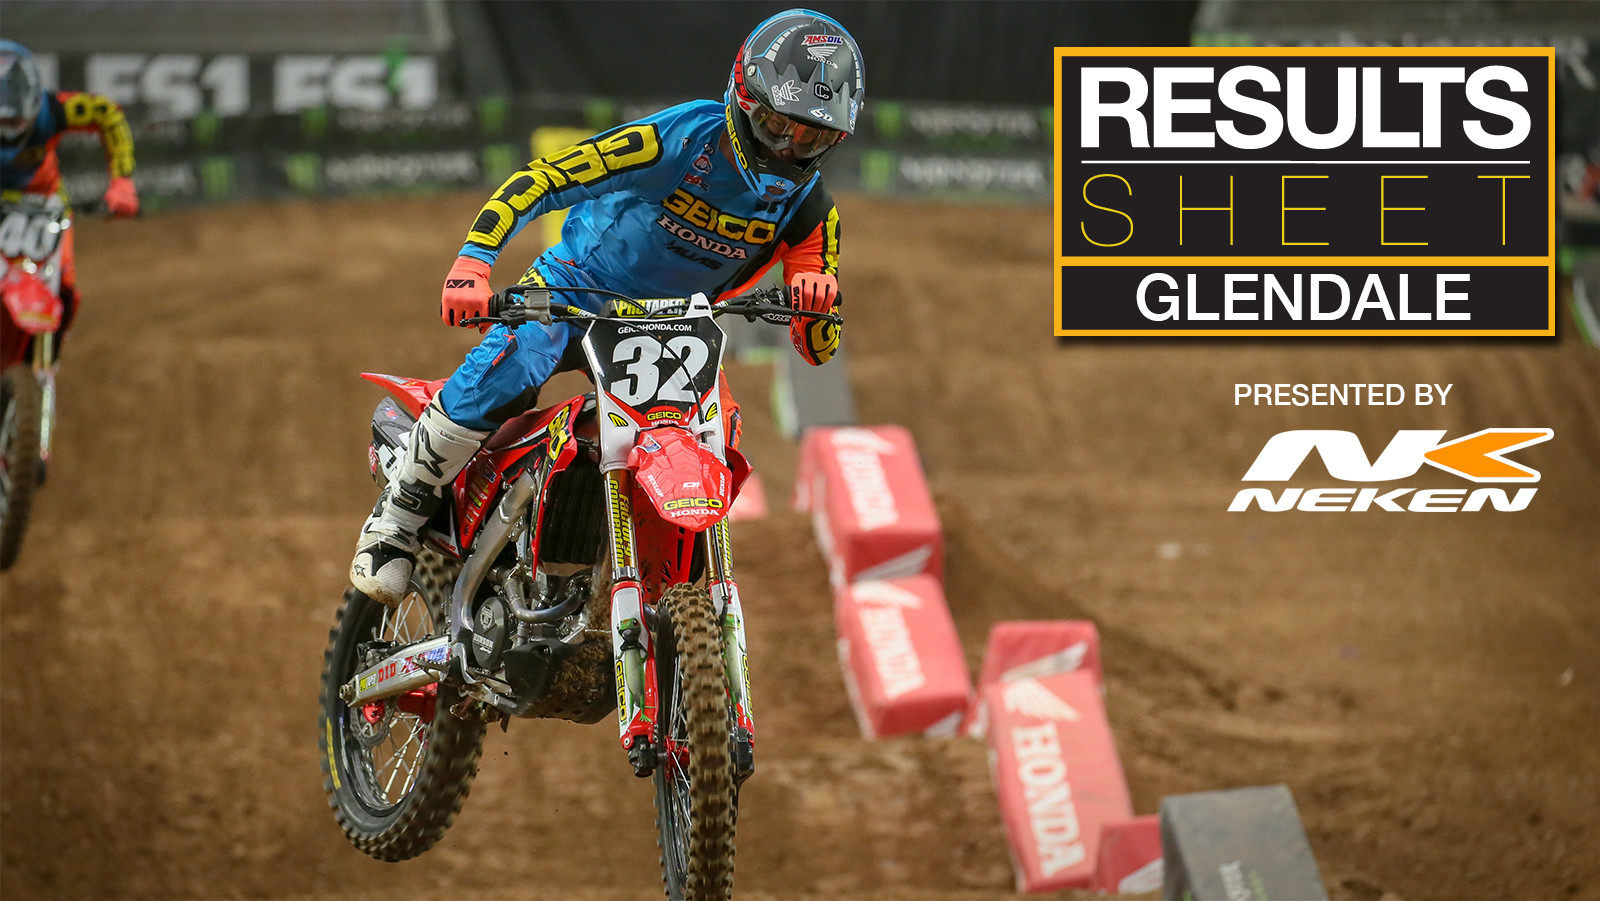 Results Sheet: 2018 Glendale Supercross